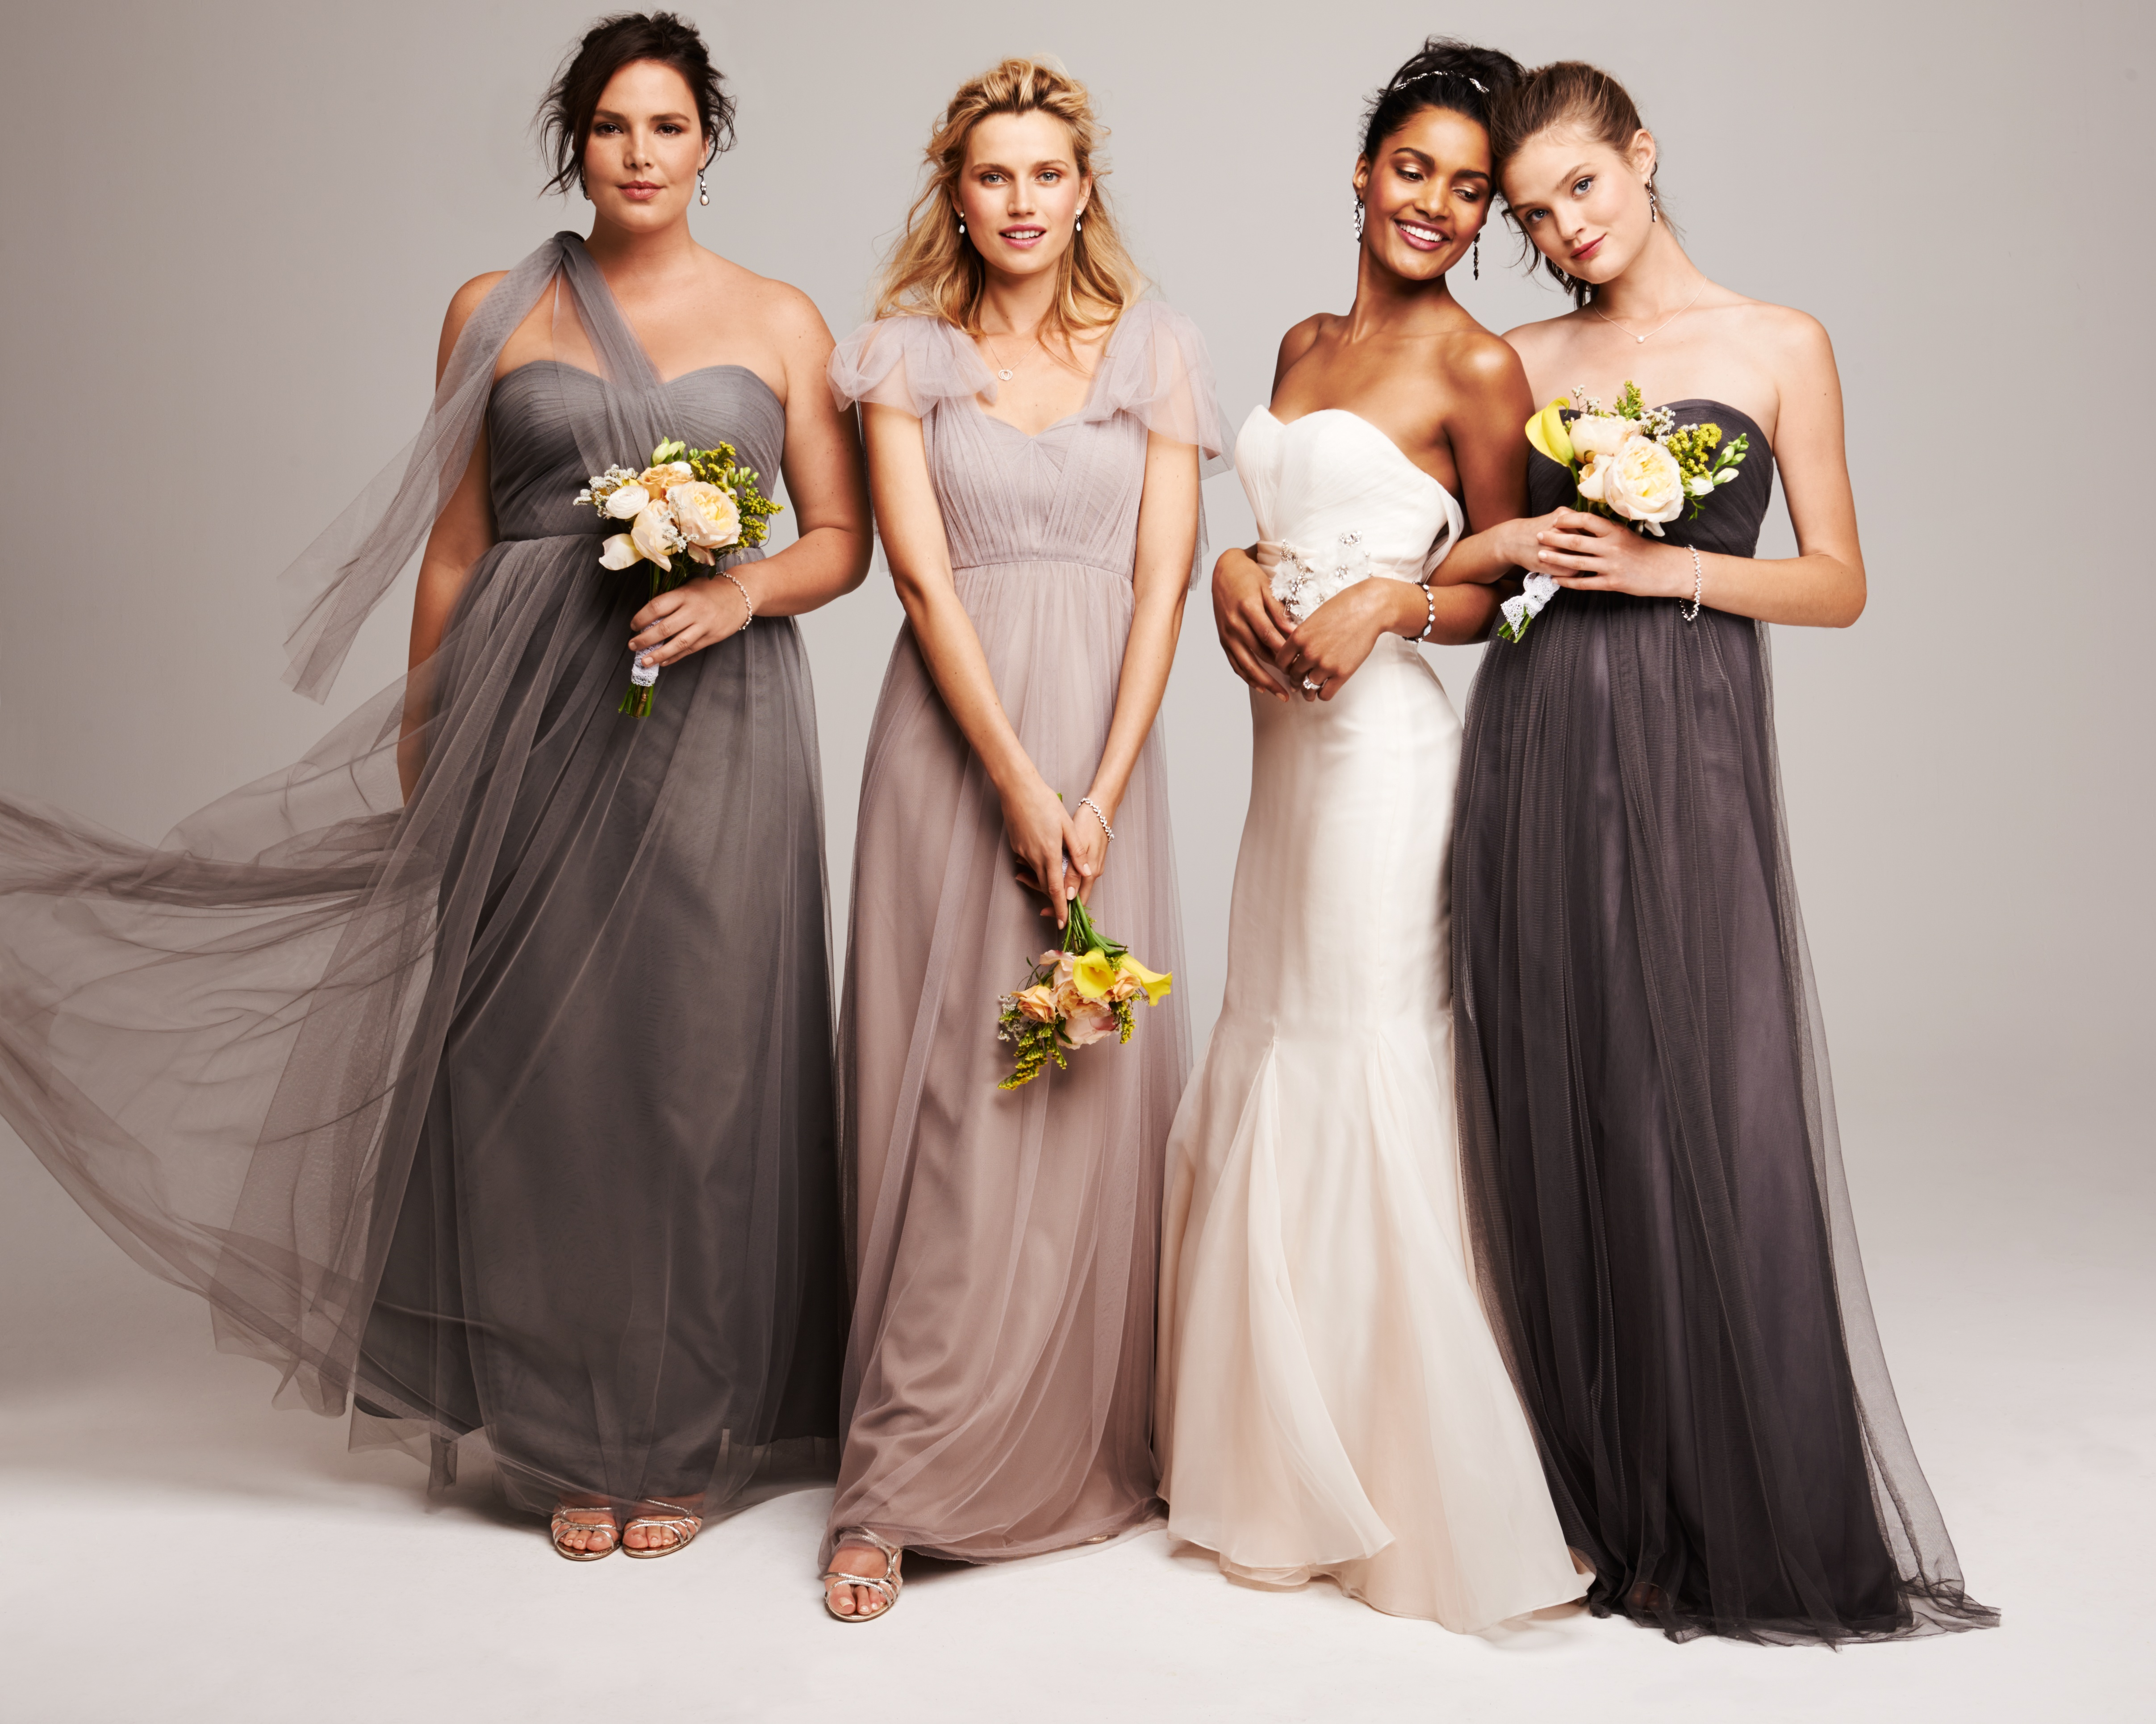 Bridesmaid dresses from nordstrom oh lovely day for Nordstrom dresses for wedding